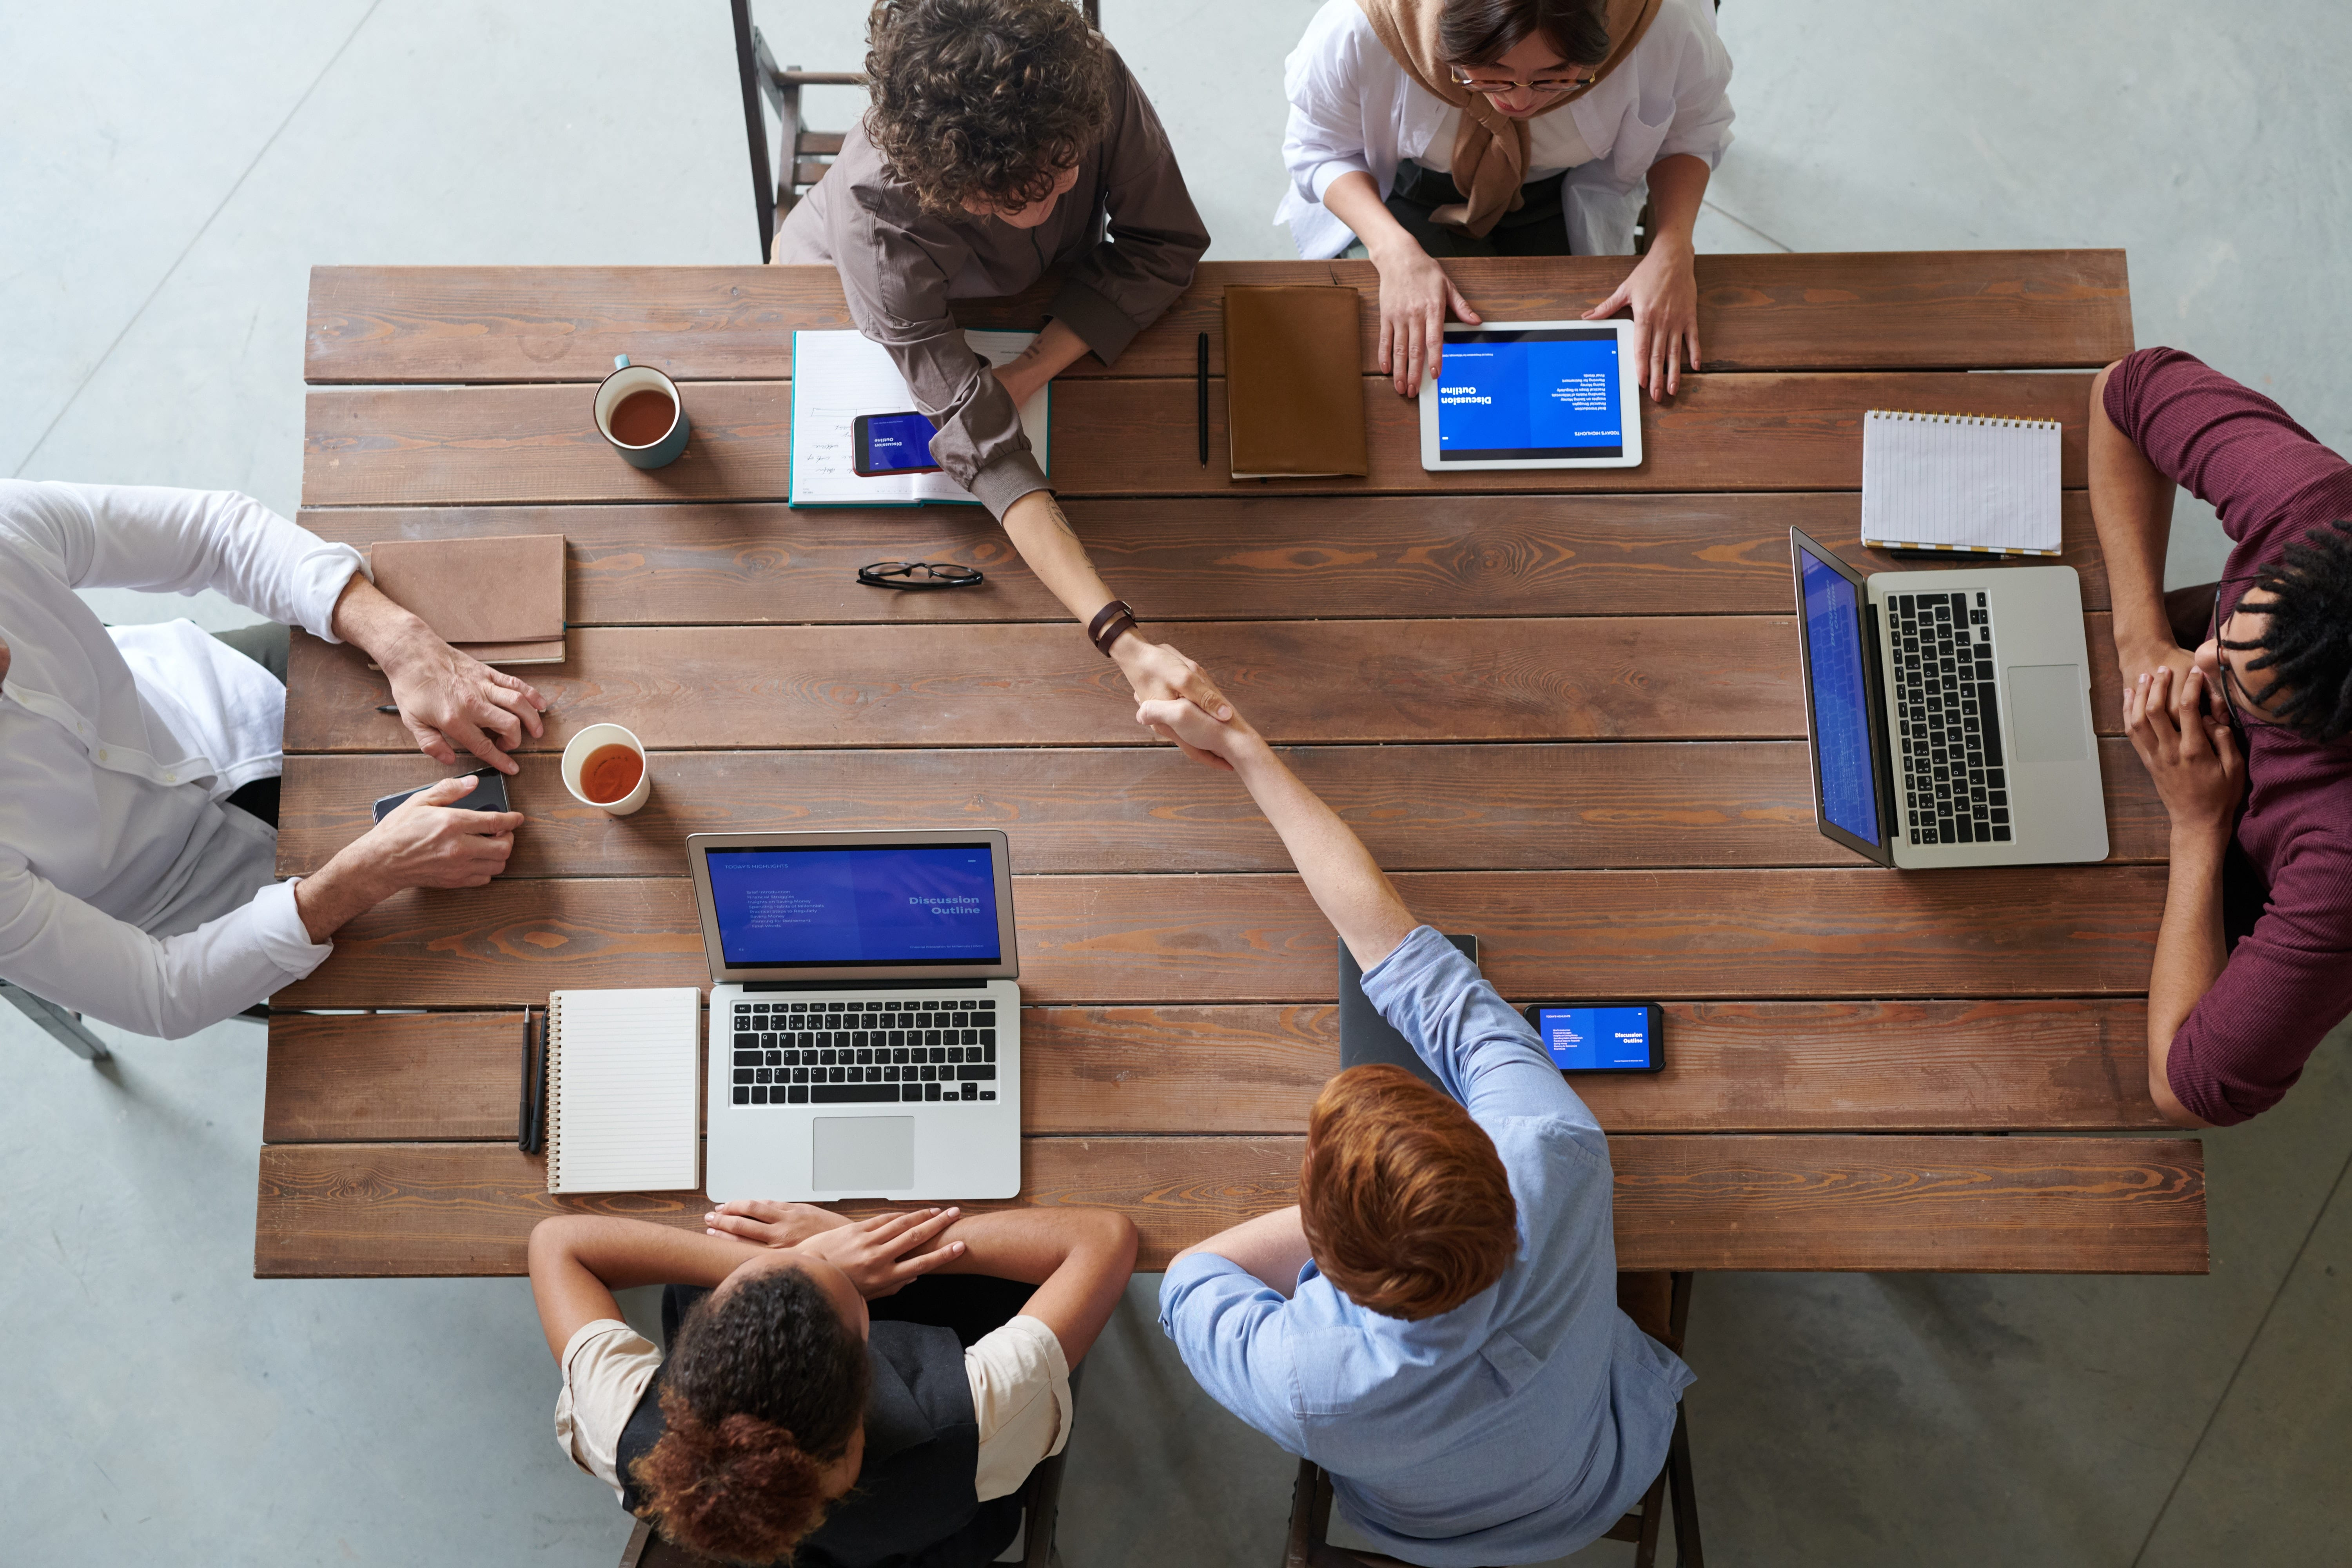 Group of people with laptops having meeting at brown wooden table; image by Fauxels, via Pexels.com.